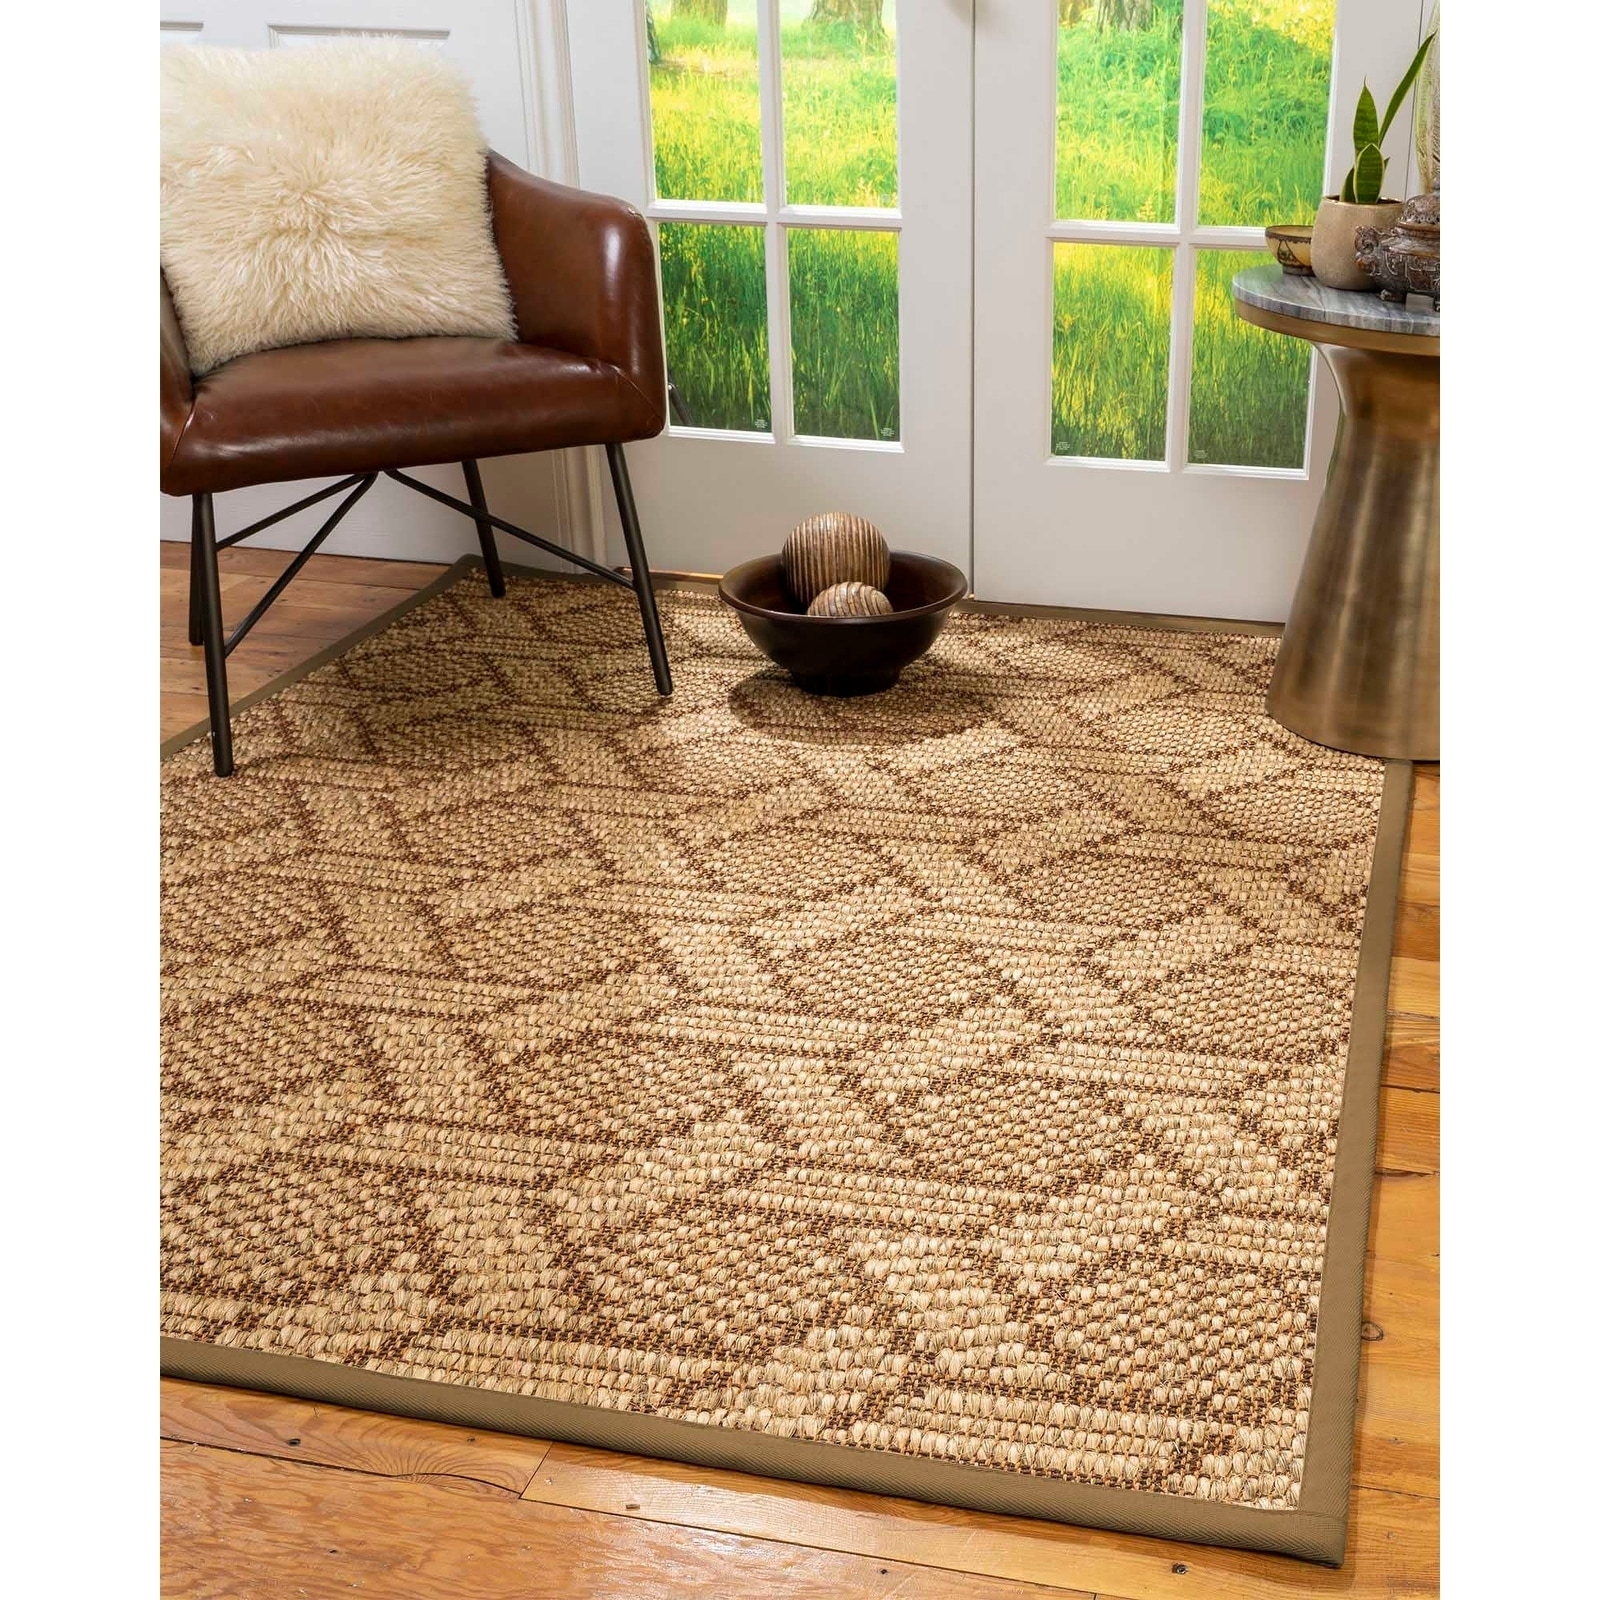 Shop Natural Area Rugs 100 Natural Fiber Handmade Chunky Seattle